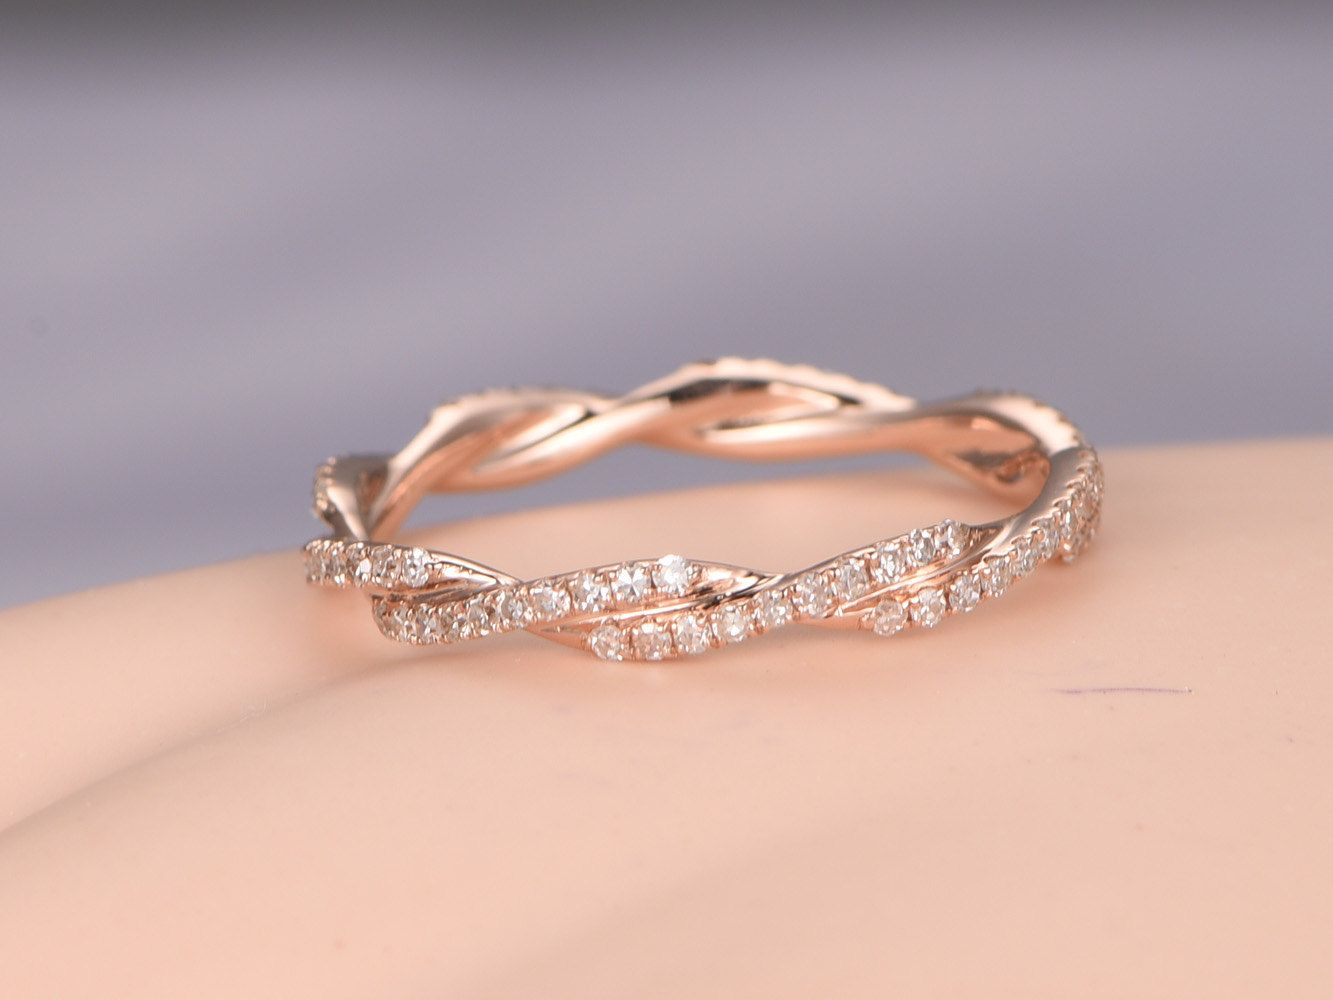 Resultado de imagen para different nature eternity rings